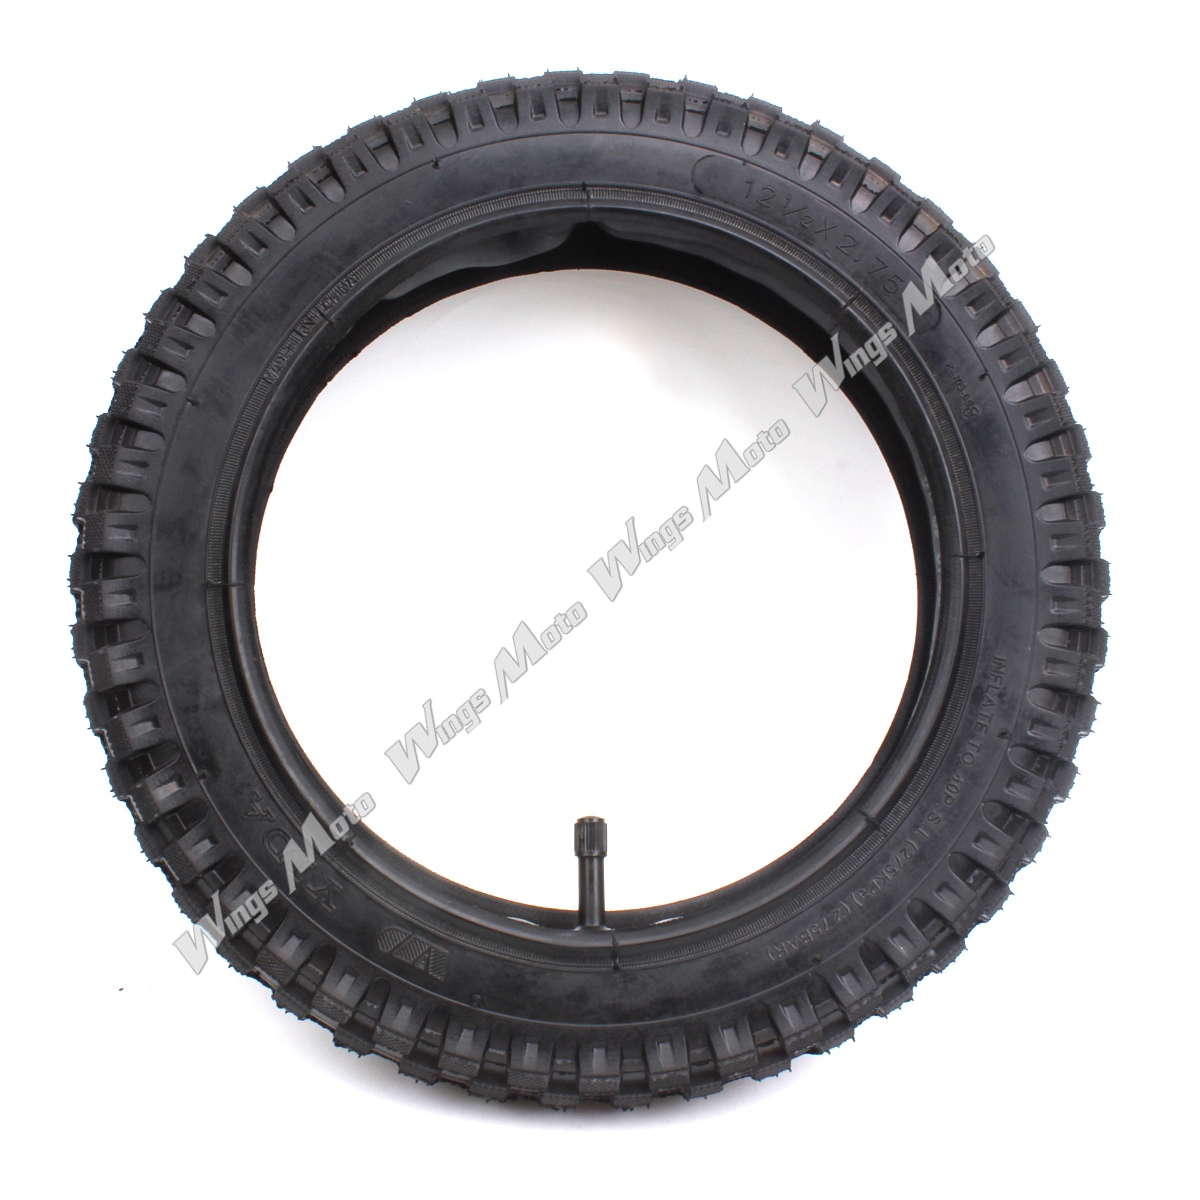 12 1/2 x 2.75 (12.5 x 2.75) Tire + Inner Tube for Razor Dune Buggy Dirt Rocket MX350 MX400 TR13 Stem